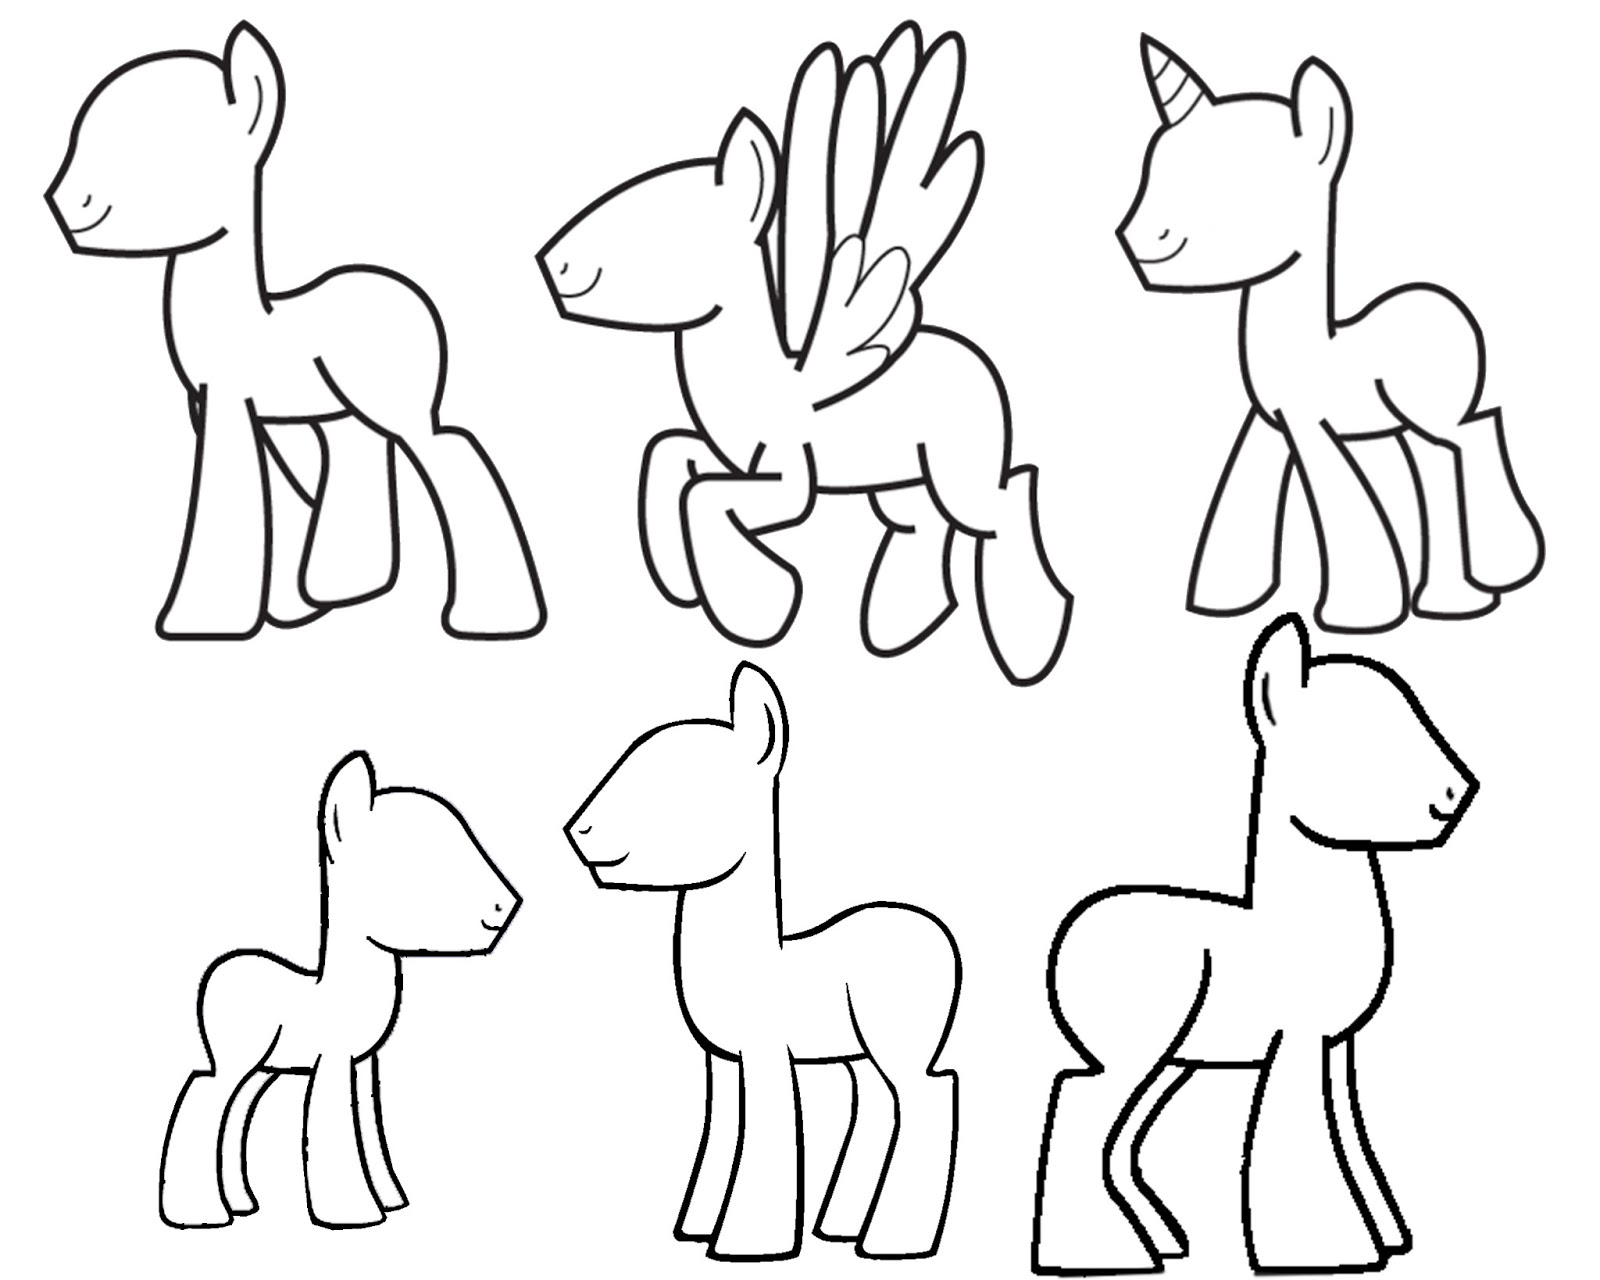 Enjoyable Doodlecraft Design And Draw Your Own My Little Pony Hairstyles For Women Draintrainus